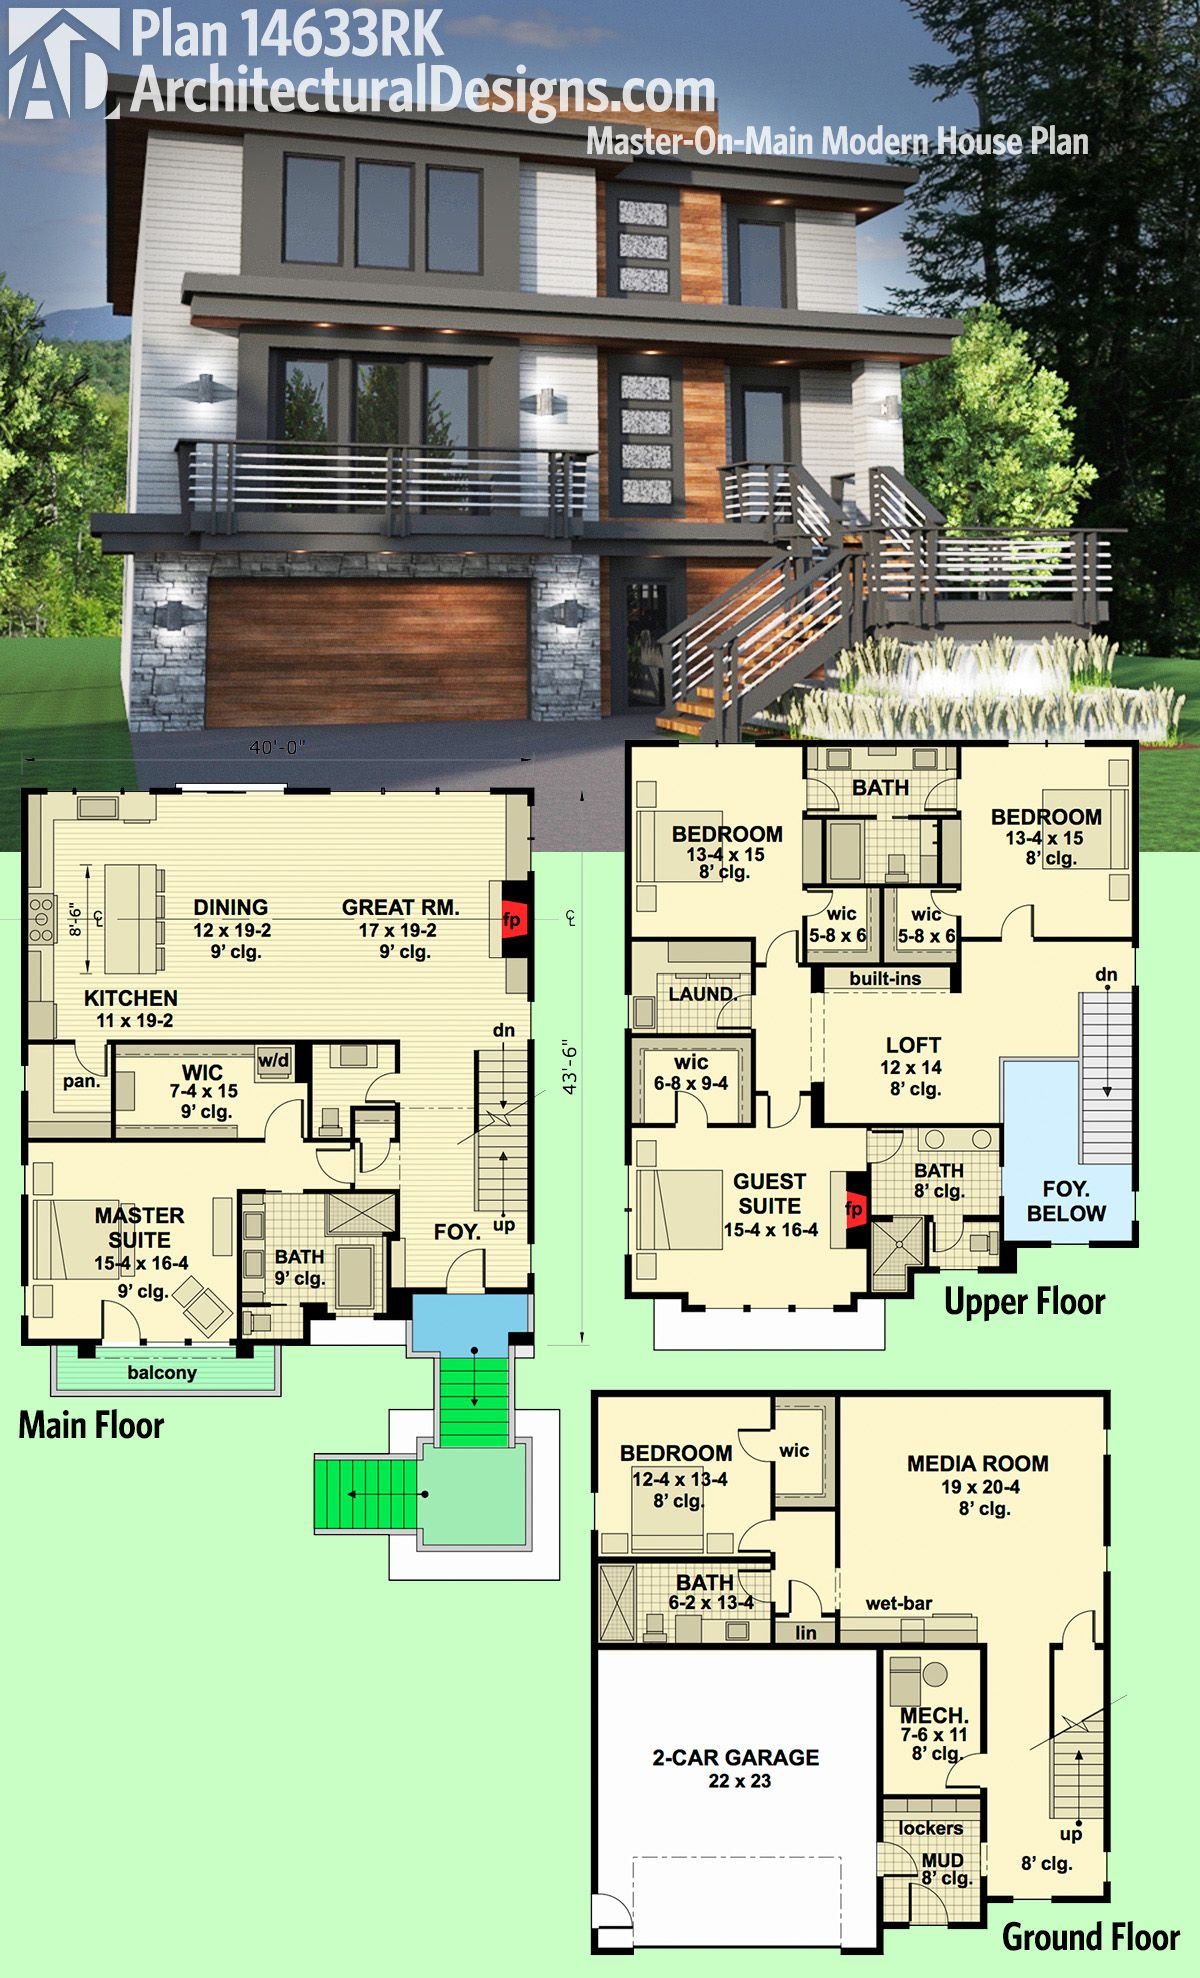 Plan 14633rk master on main modern house plan modern for Modern house plans with photos